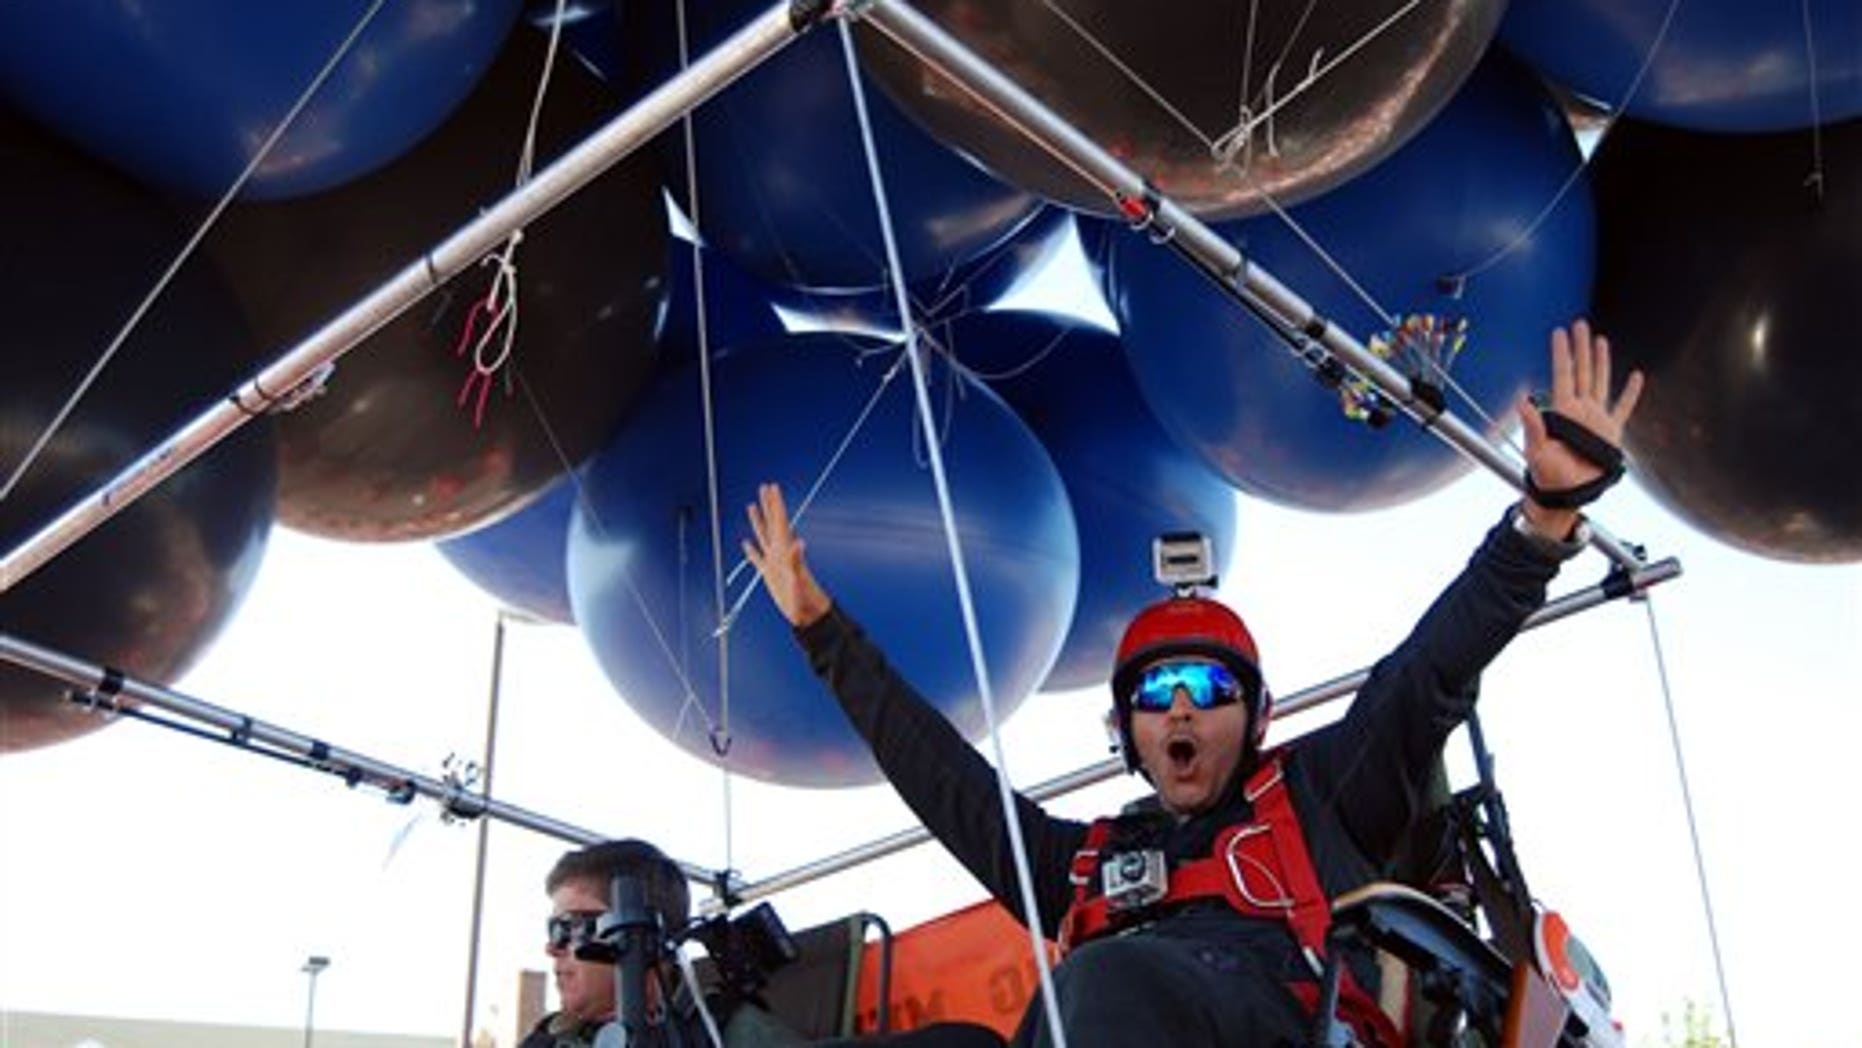 July 14, 2012: Iraqi adventurer Fareed Lafta, right, and Bend, Ore., gas station owner Kent Couch lift off from Couch's gas station in Bend, Ore., as they attempt to fly some 360 miles to Montana.